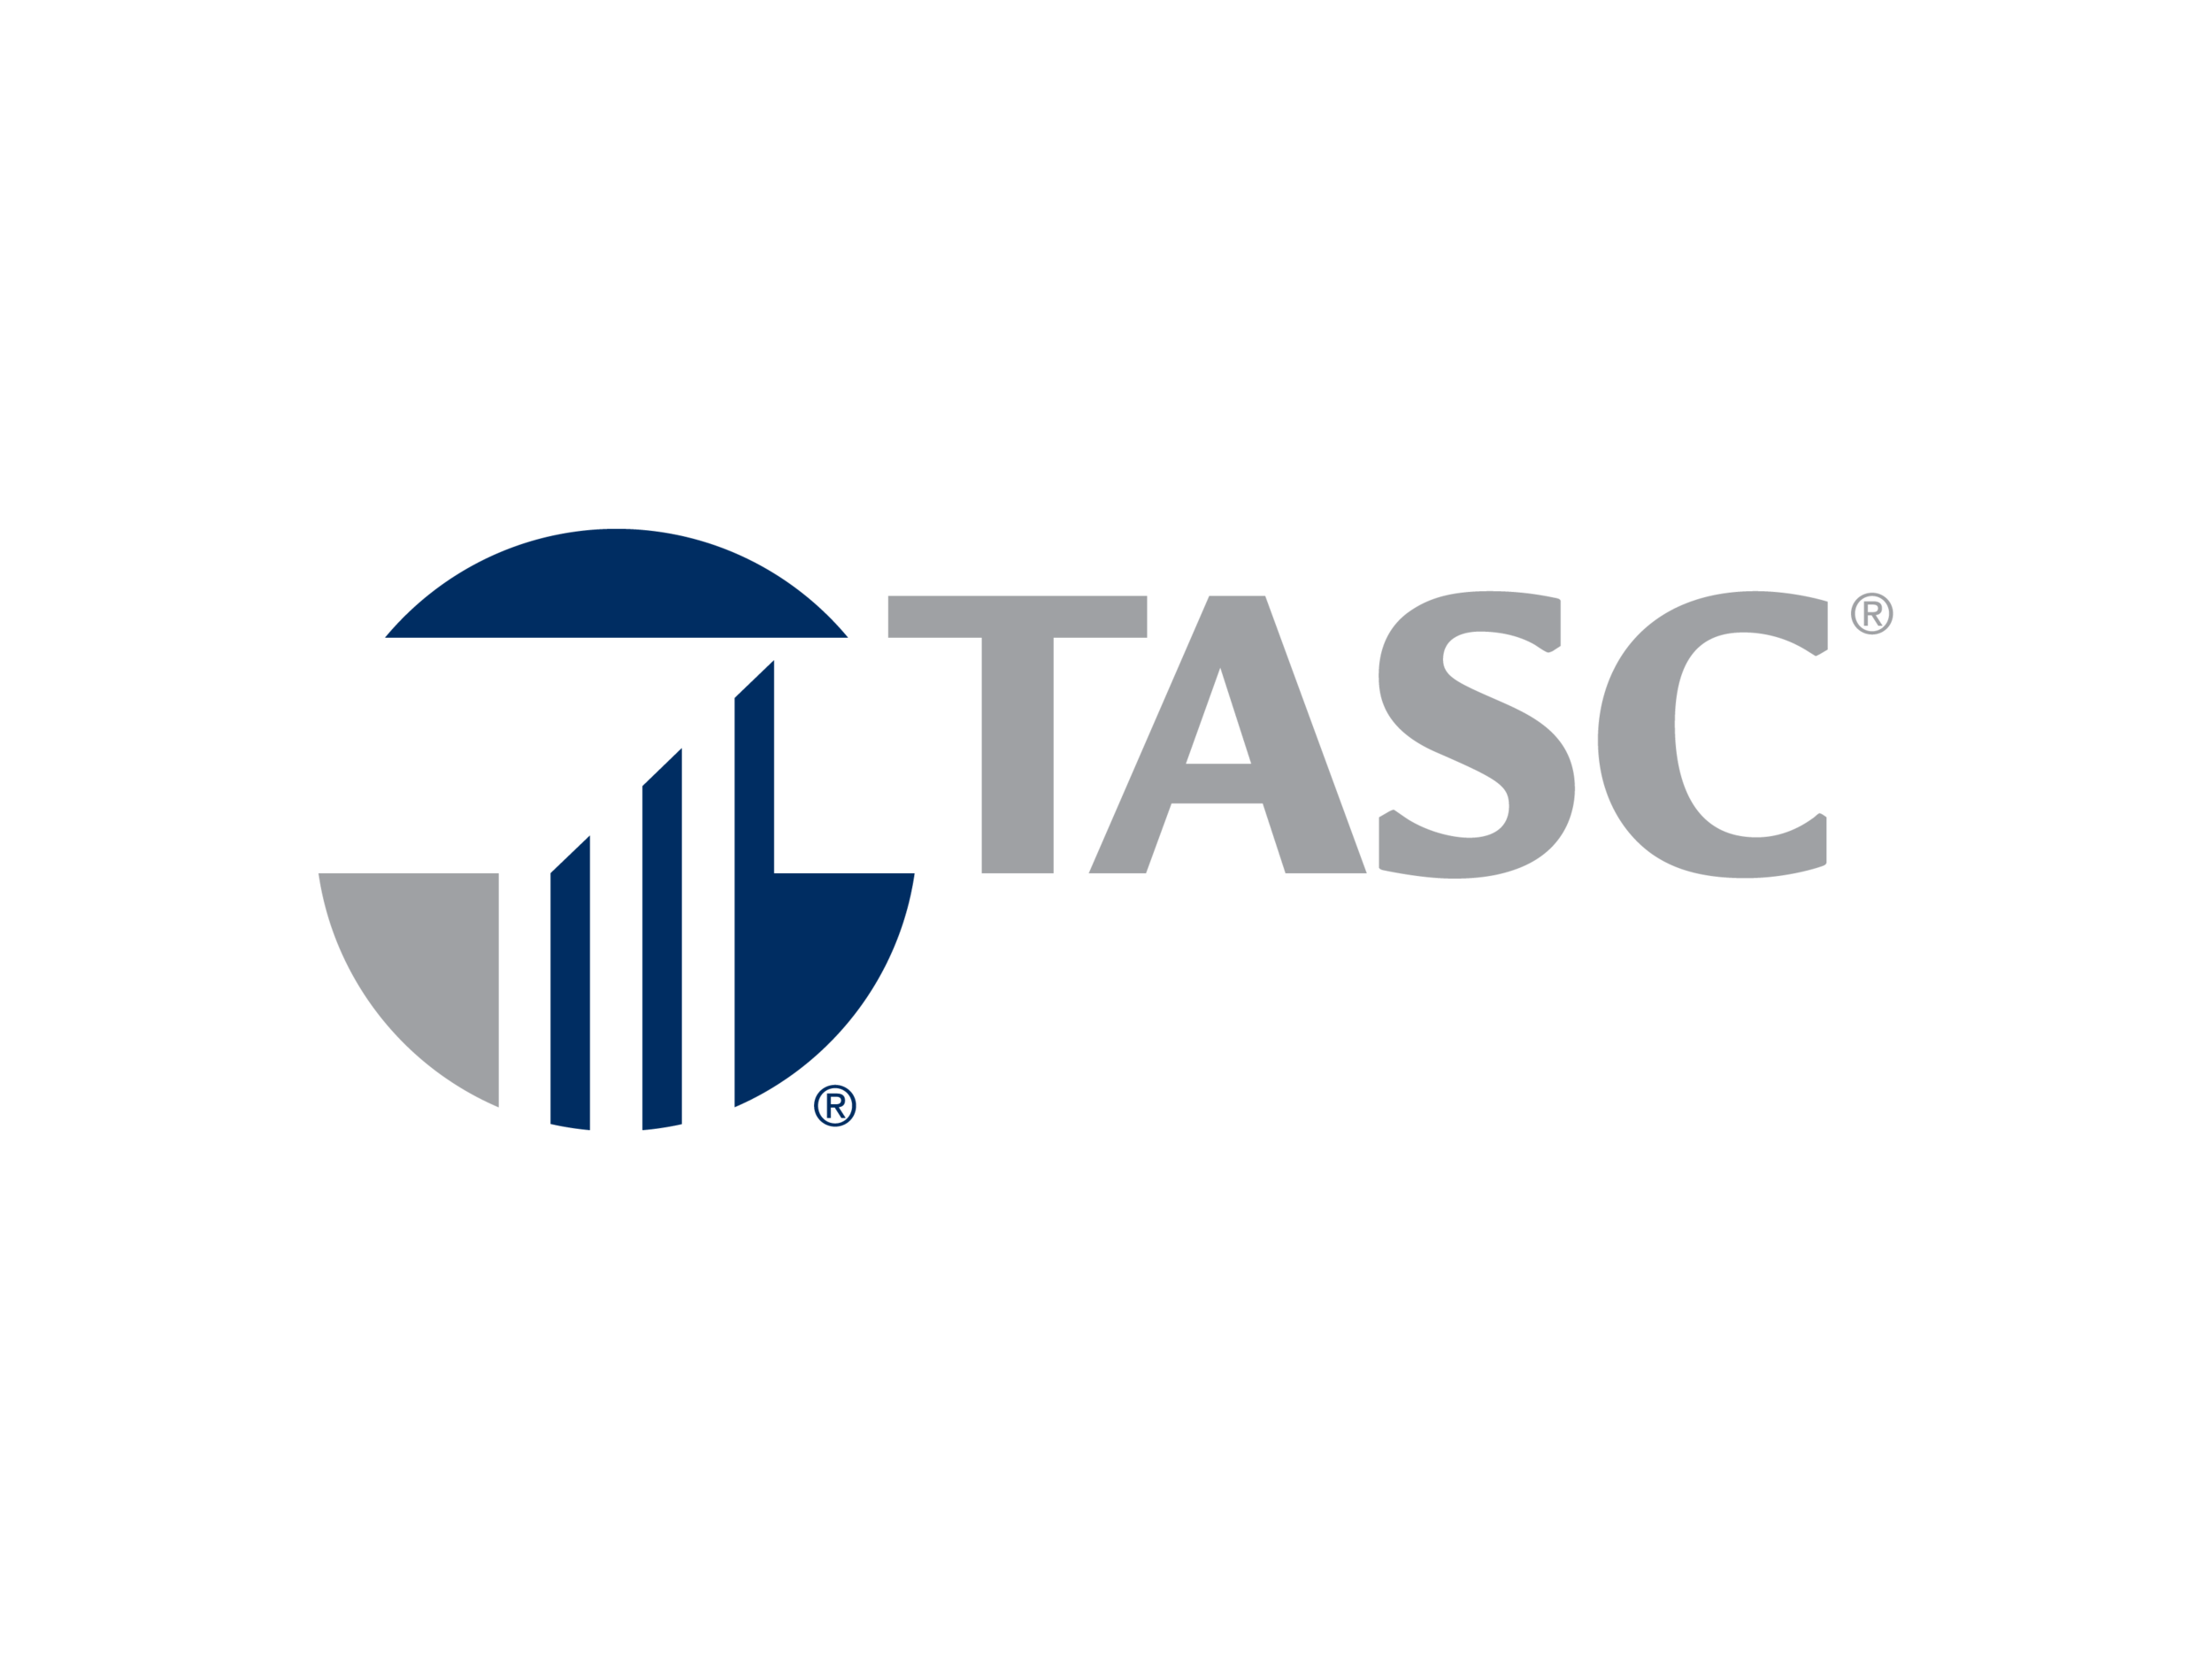 TASC.750px.png